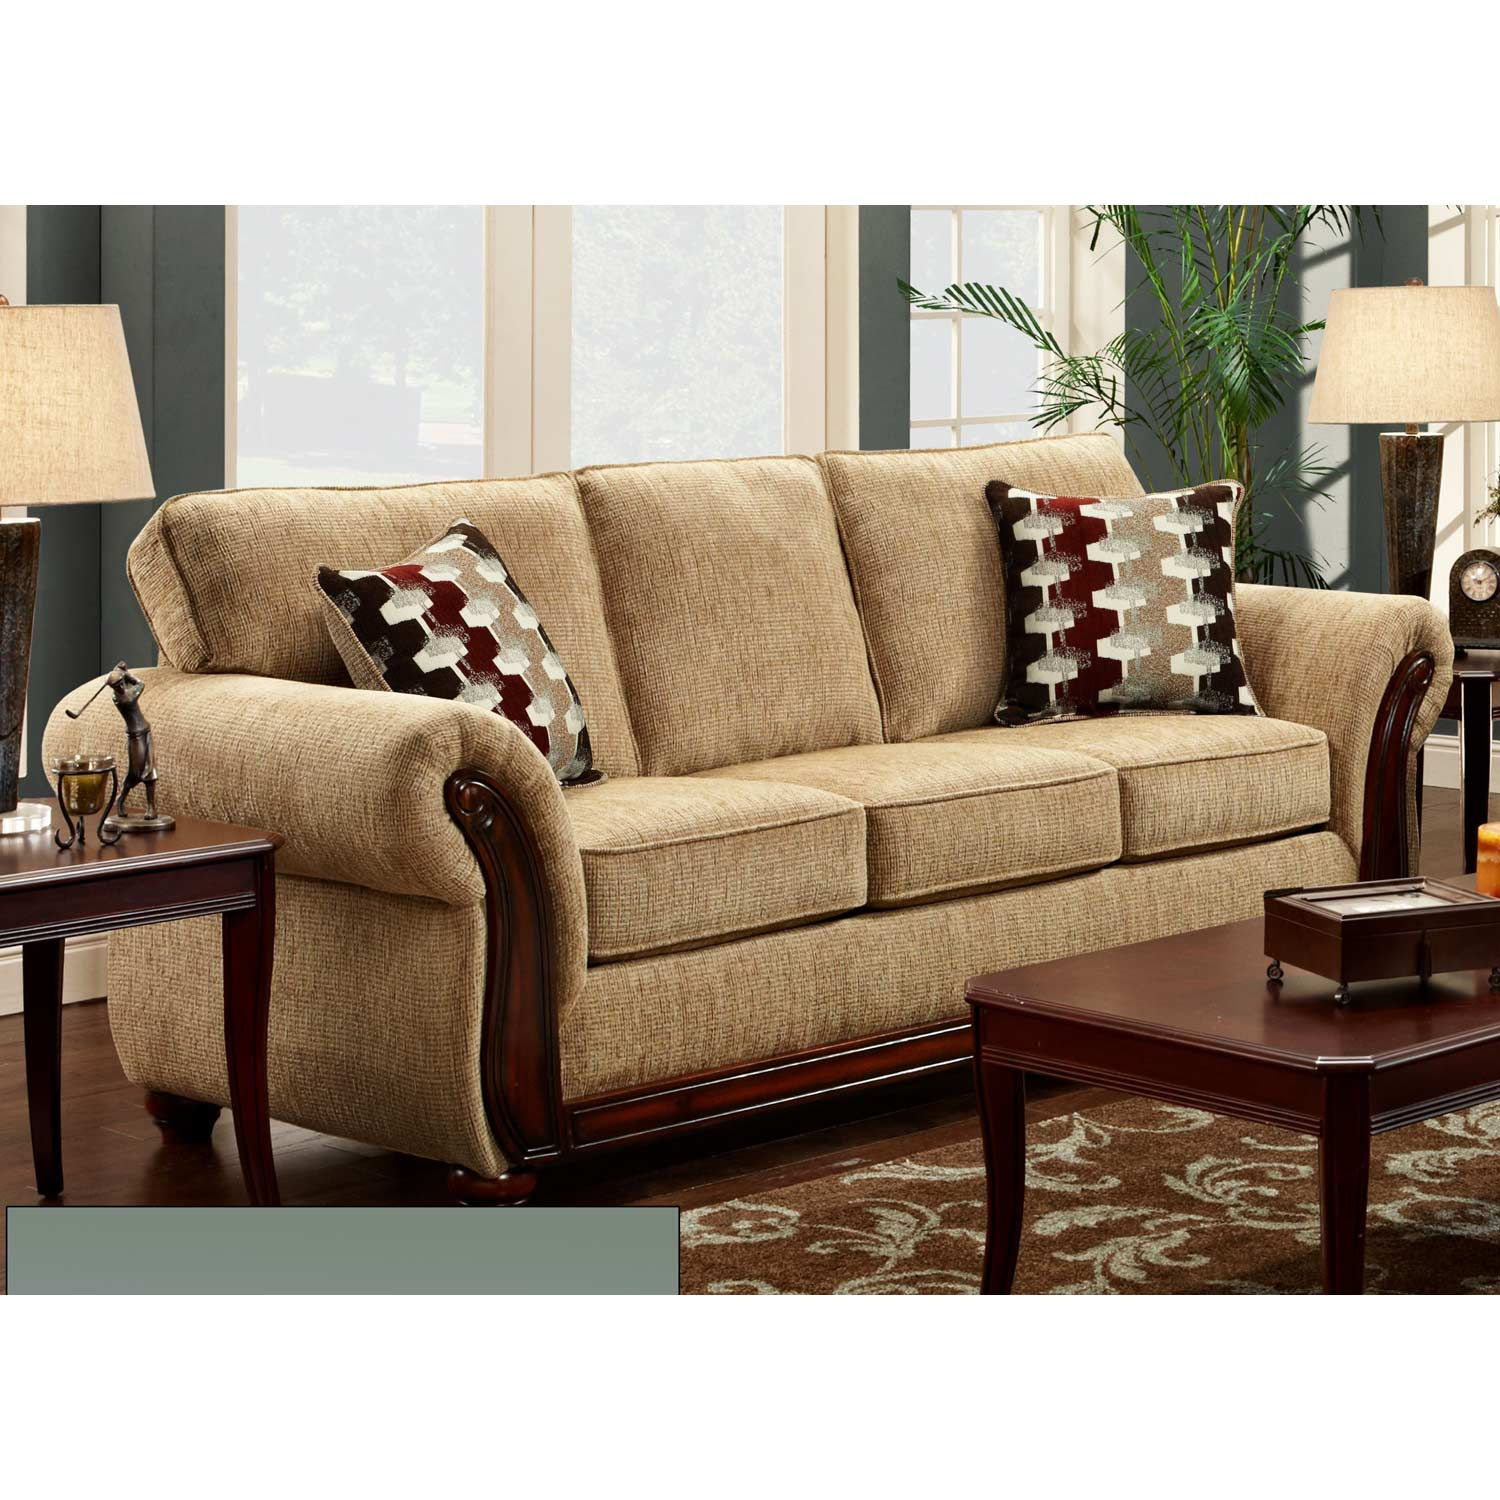 Courtney Rolled Arm Sofa Wood Trim Radar Havana Chf 478100 S